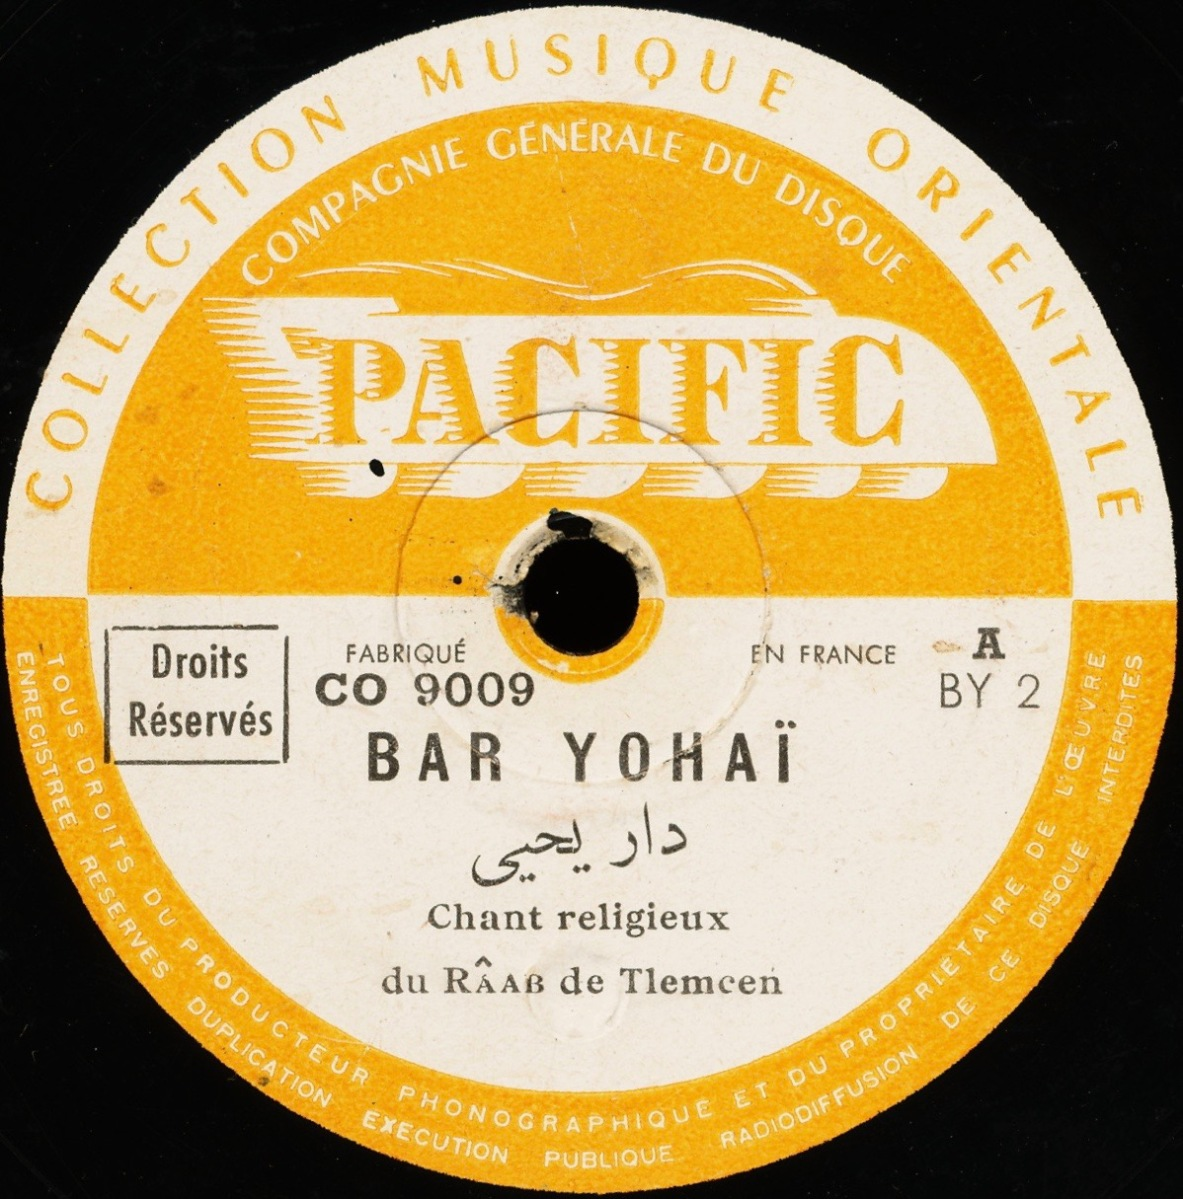 Unknown – Bar Yohaï – Pacific, c. mid-1950s